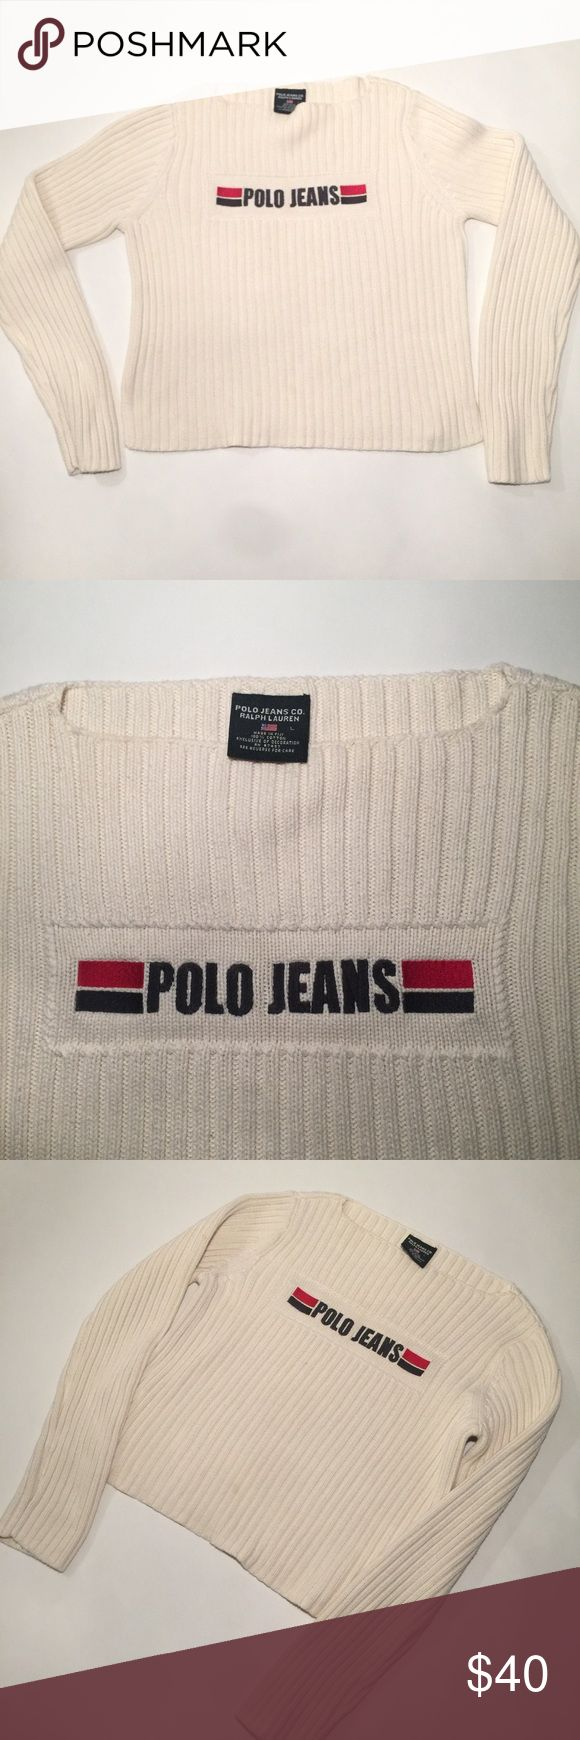 "Ralph Lauren Polo Jeans Sweater Check out this vintage Ralph Lauren Polo Jeans sweater in a beige color, the sweater has no holes or stains and is in good condition. I believe the sweater has a slight crop to it (measures approximately ""20 in length) a definite 90s realness look! Size Large   Tags: urban outfitters, nasty gal, hot topic, Ralph Lauren, Polo Jeans, vintage, unif Ralph Lauren Sweaters Crew & Scoop Necks"